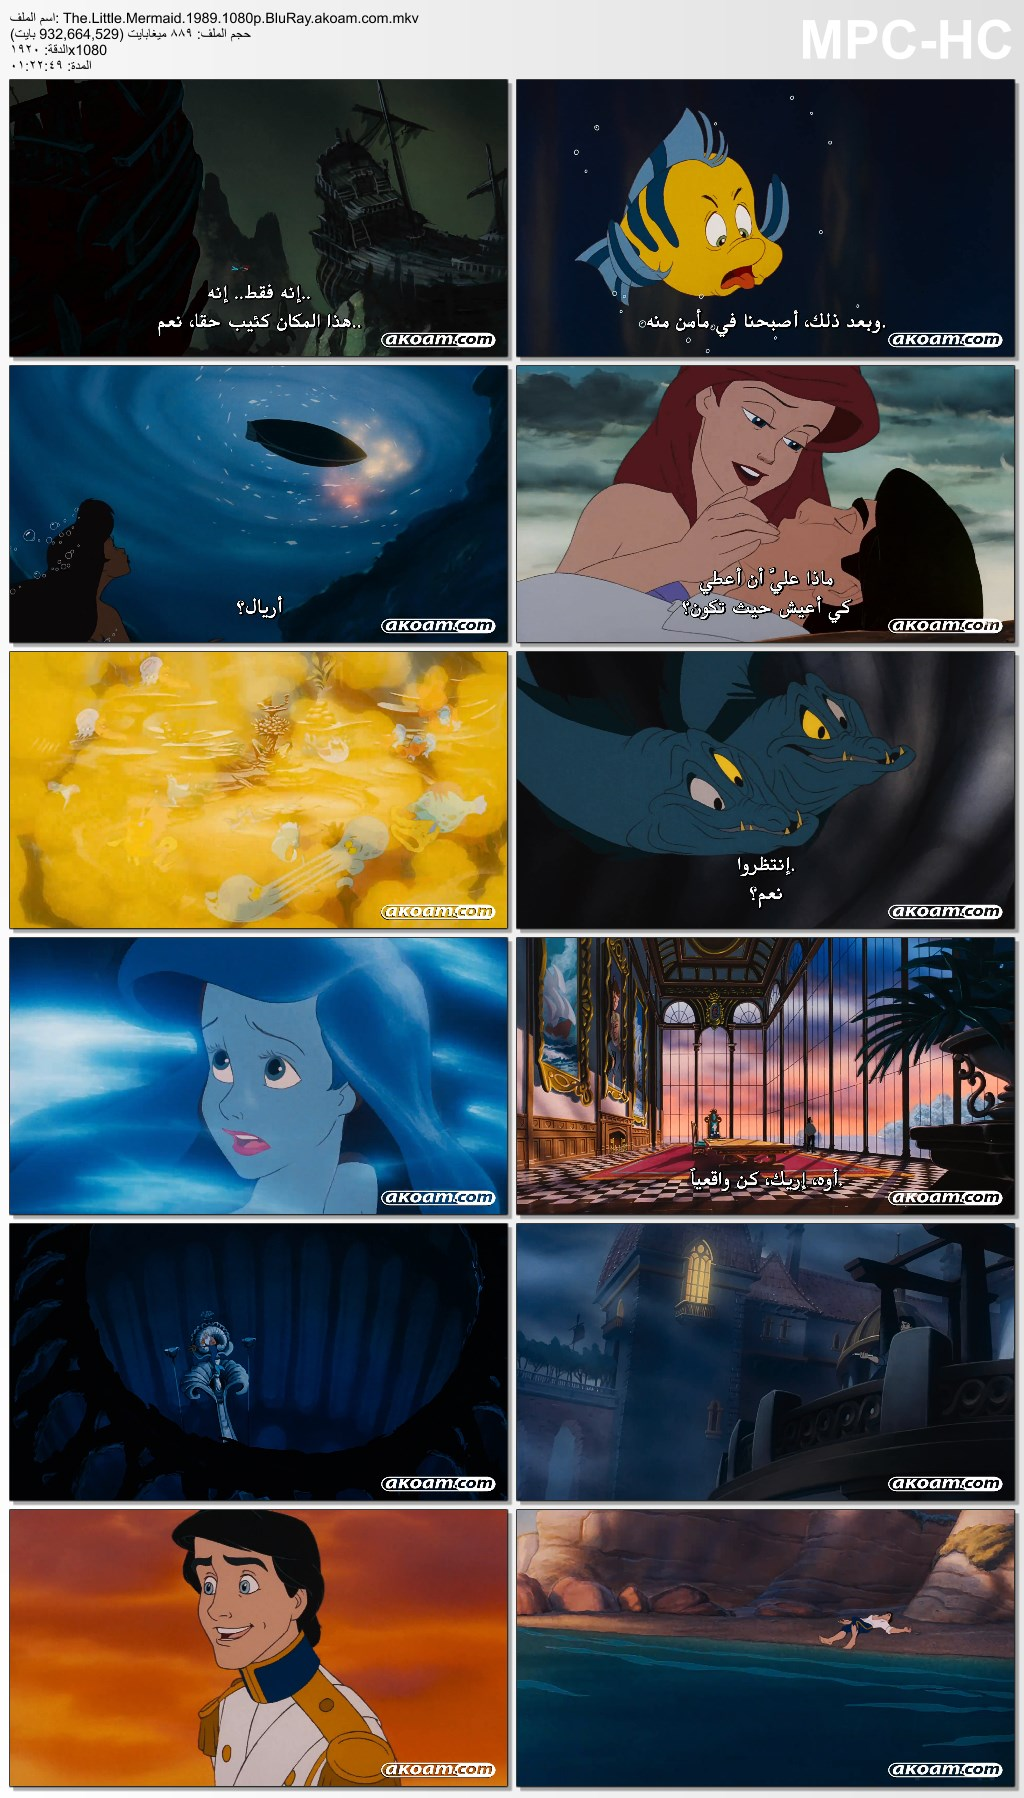 الانيميشن,الفانتازيا,العائلي,The Little Mermaid,حورية البحر,The Little Mermaid II: Return to the Sea 2000,The Little Mermaid: Ariel's Beginning,The Little Mermaid 1989